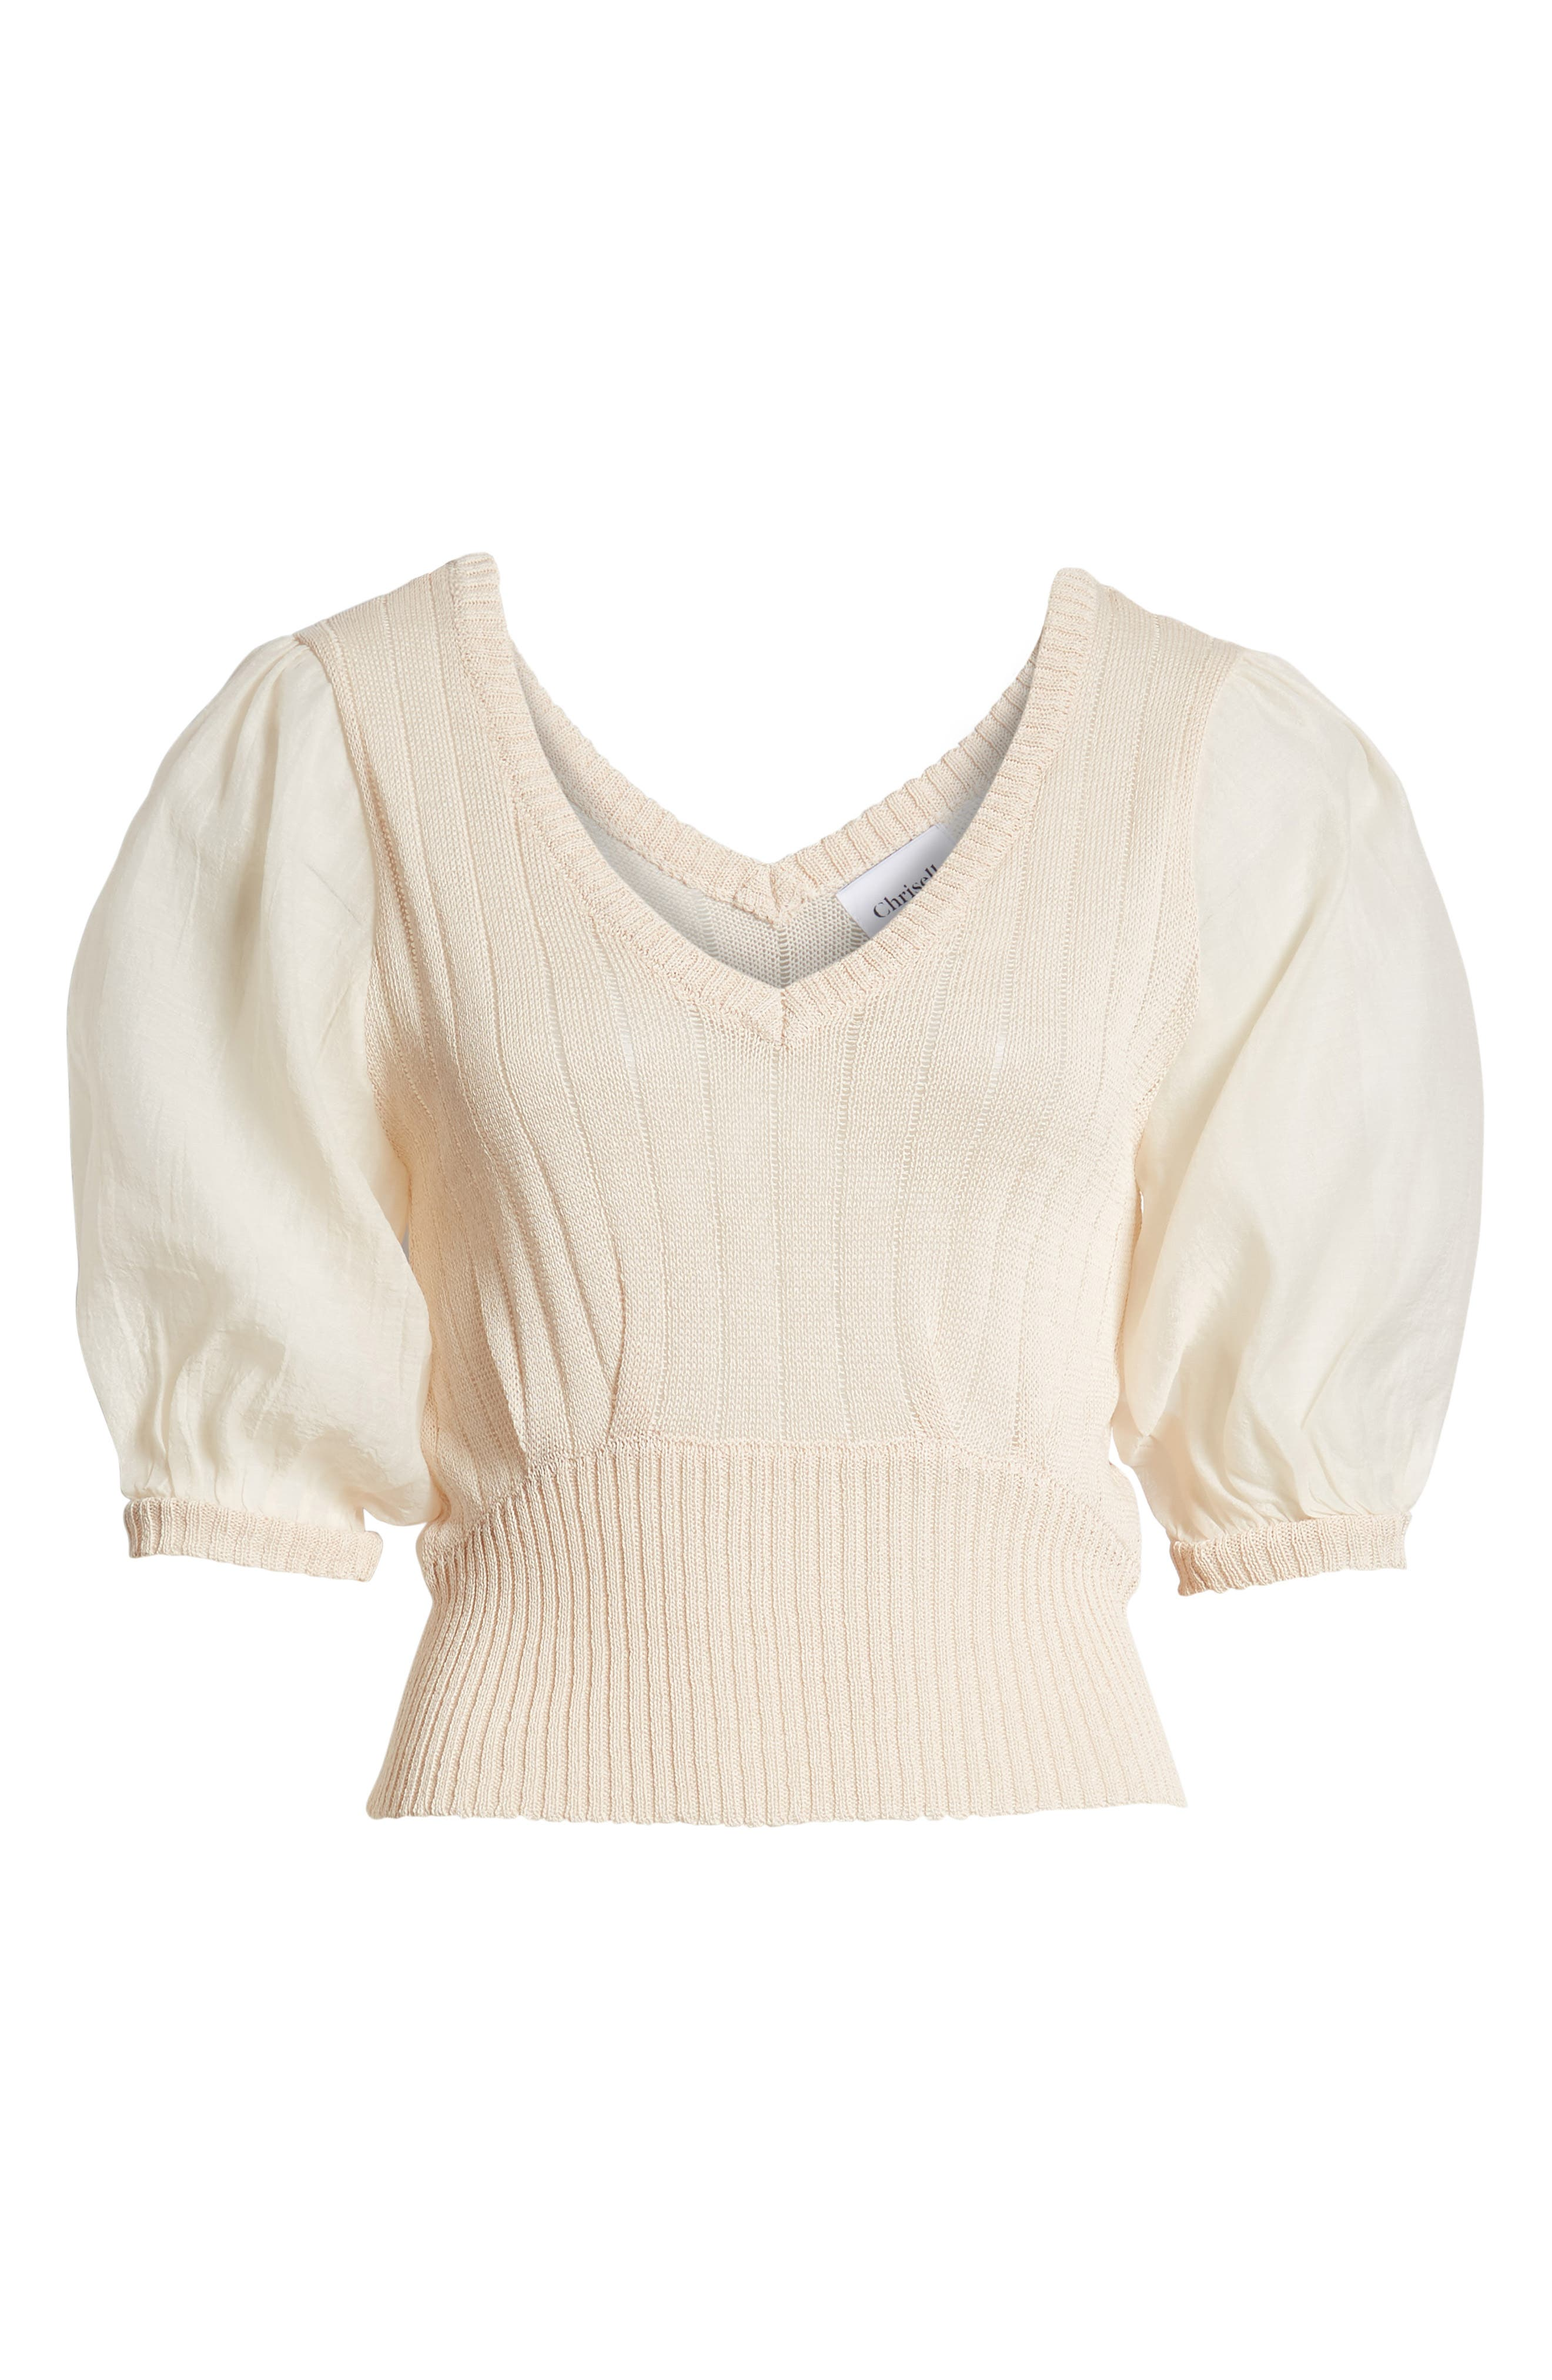 CHRISELLE LIM COLLECTION, Chriselle Lim Sweater, Alternate thumbnail 6, color, 250